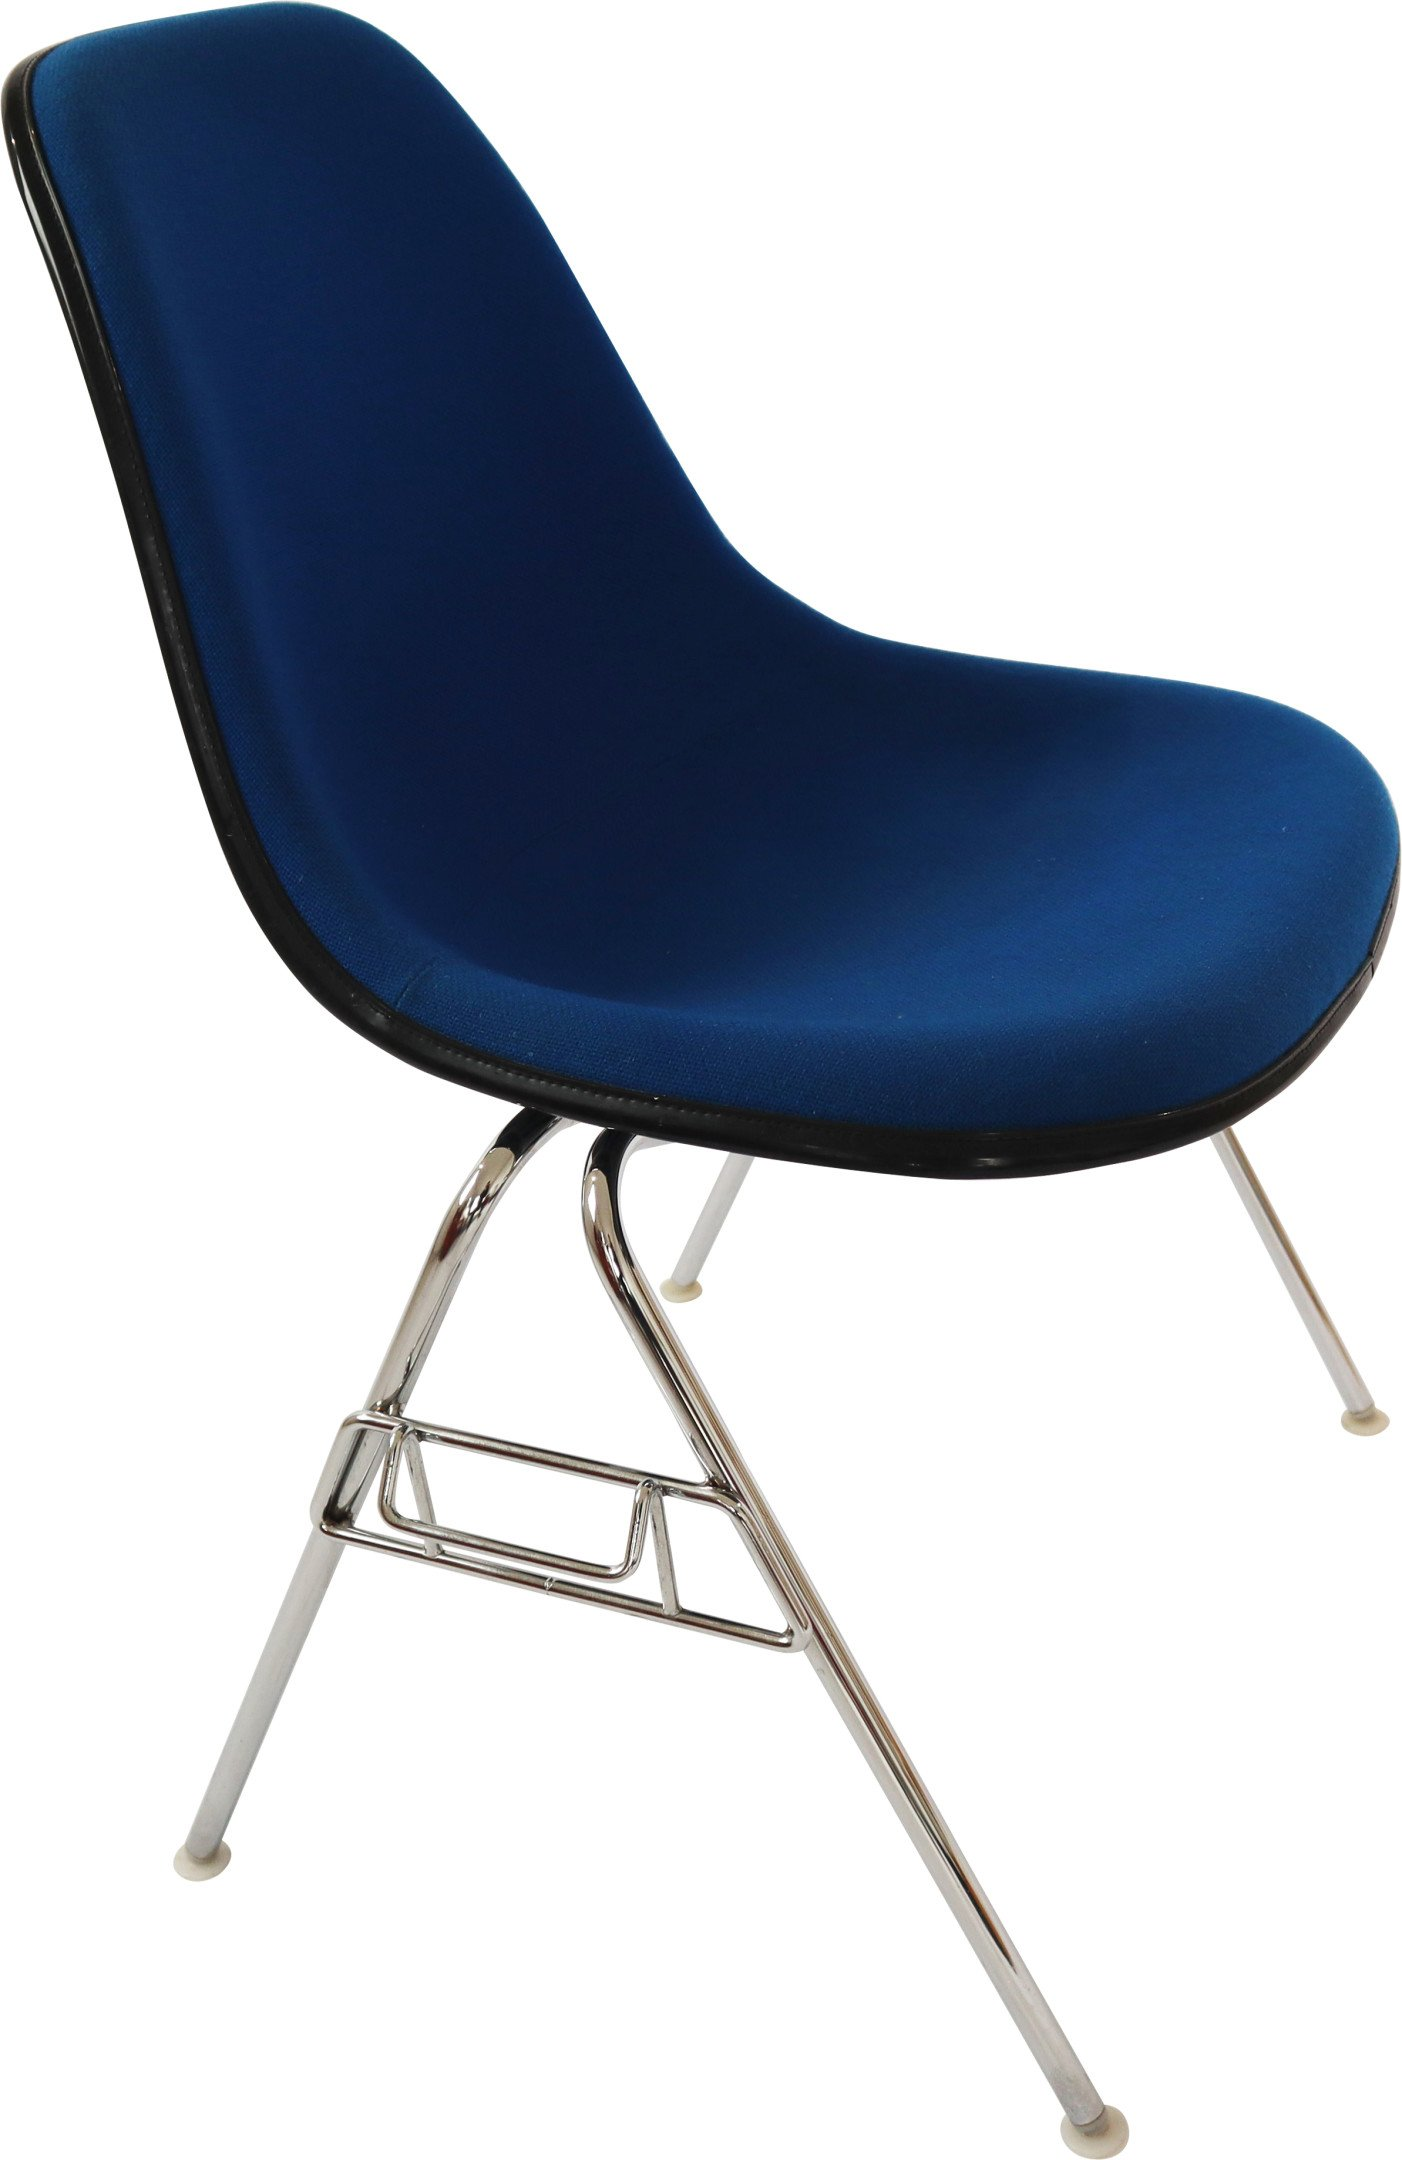 Chair by Ch. i R. Eames, Vitra, 1970s